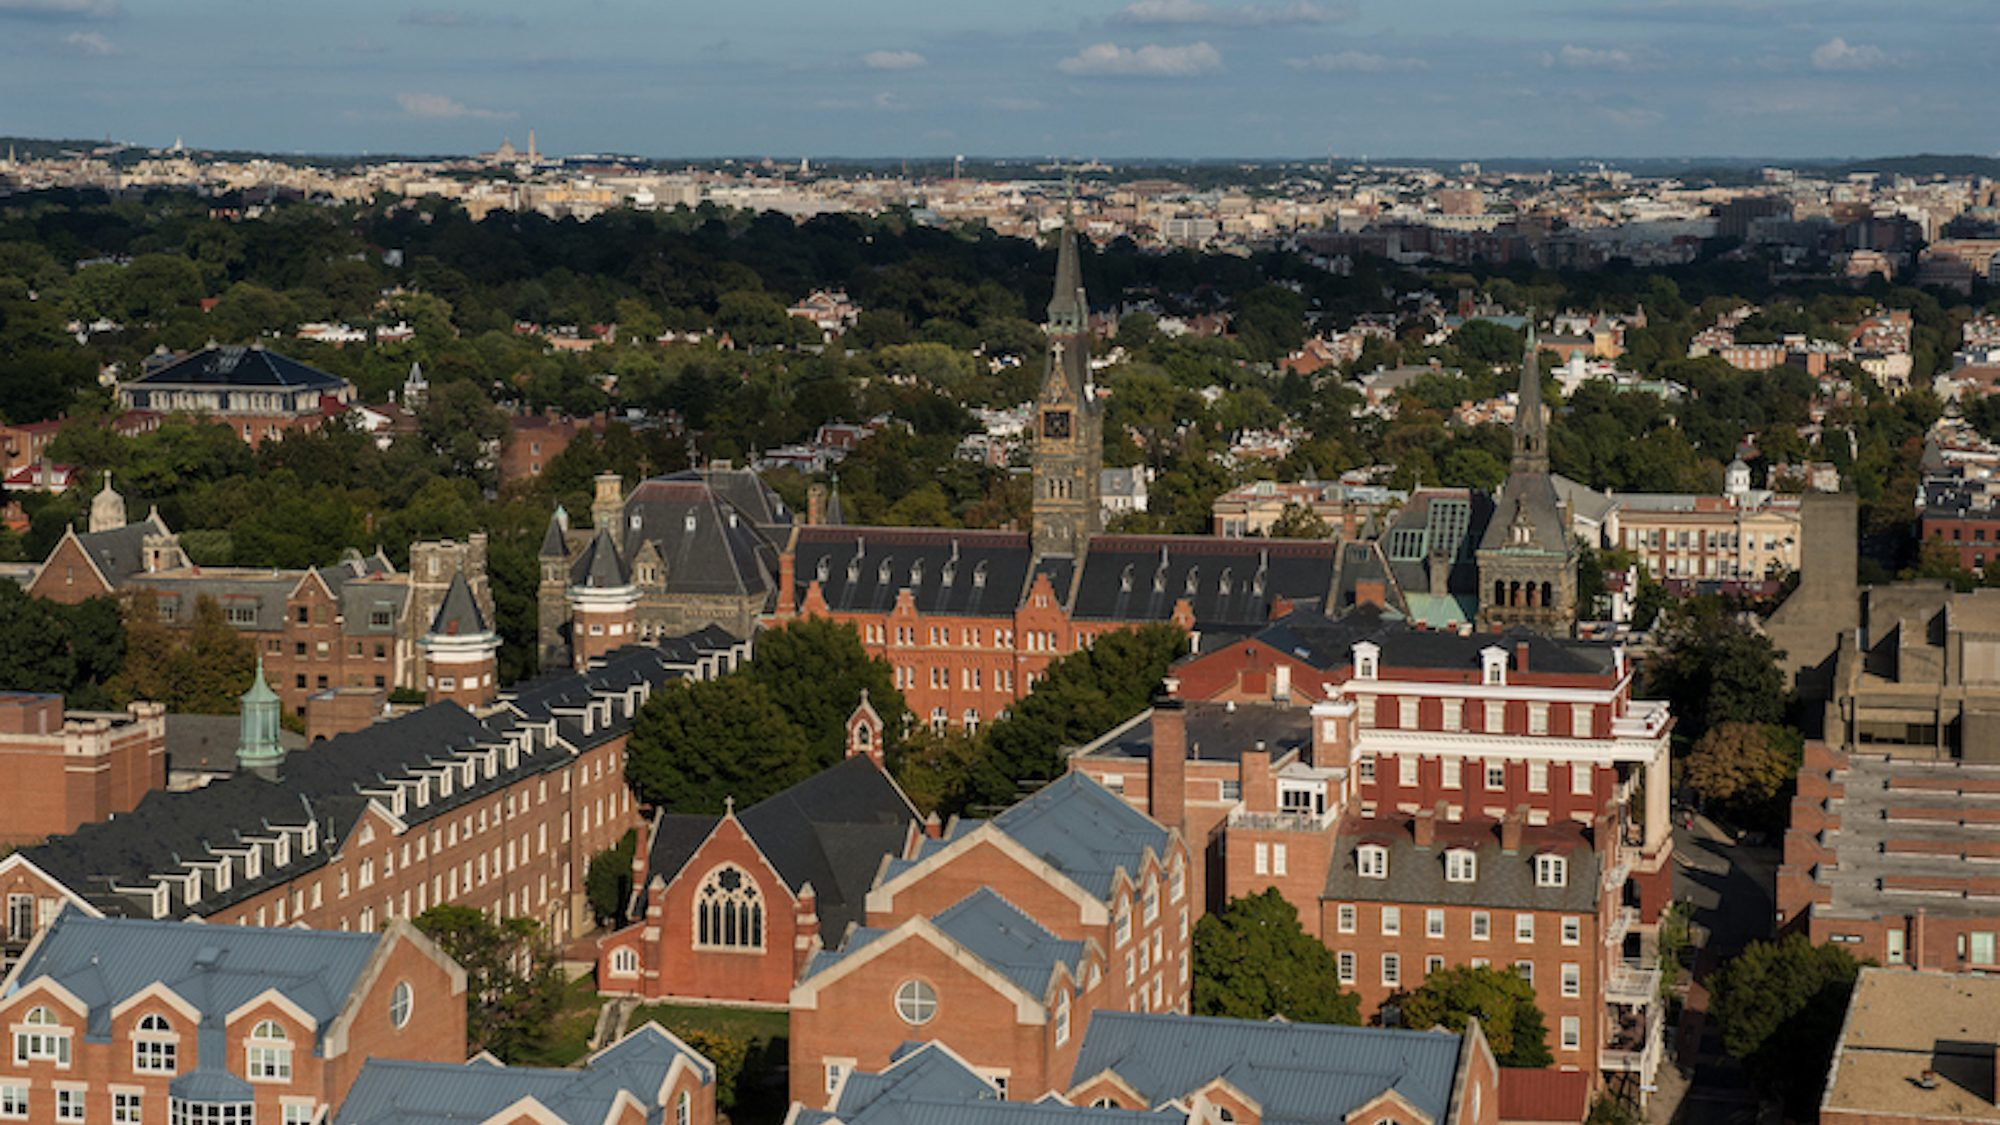 An aerial photograph of Georgetown University including the clock tower of Healy Hall